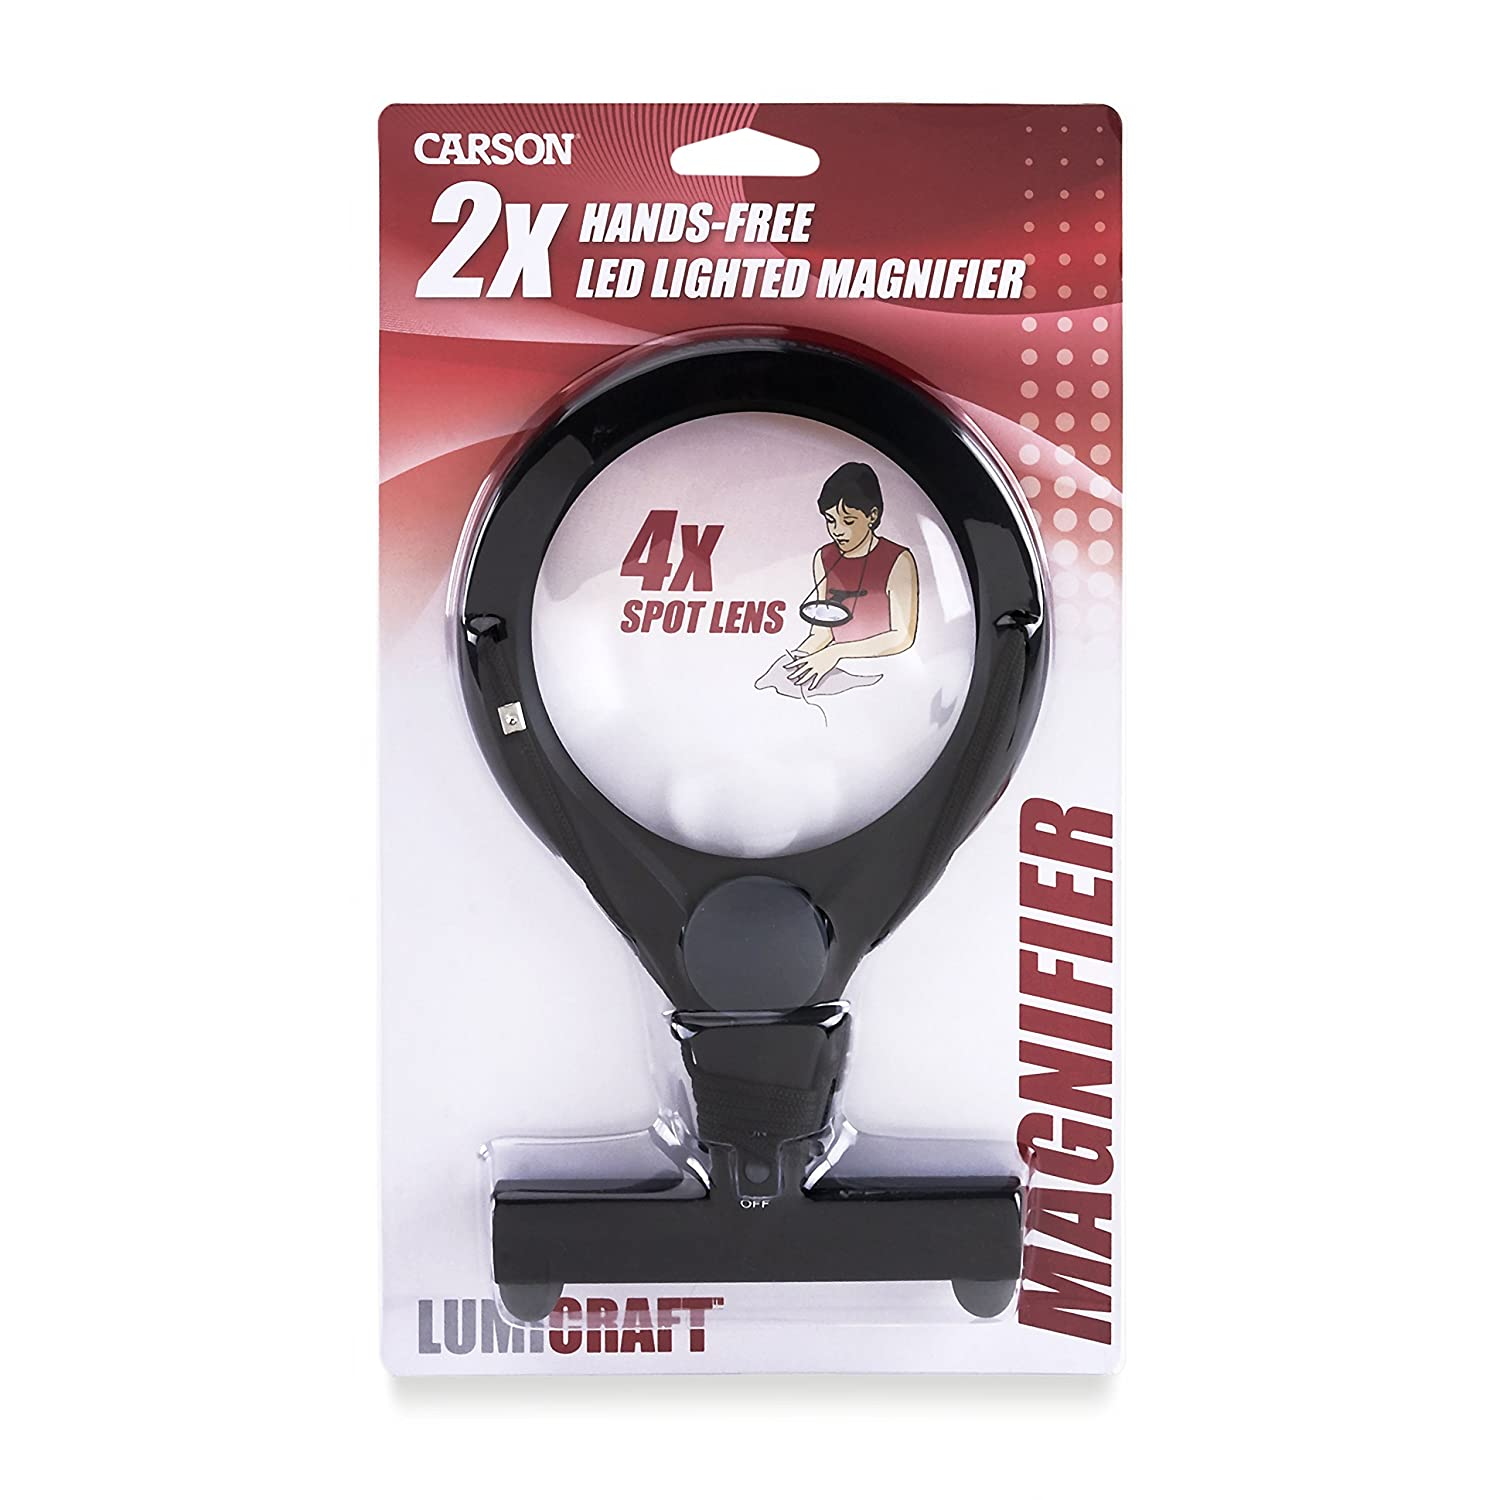 Carson LumiCraft LED Lighted Hands-Free 2x Magnifier with 4x Spot Lens & Neck Cord (LC-15) Carson Optical